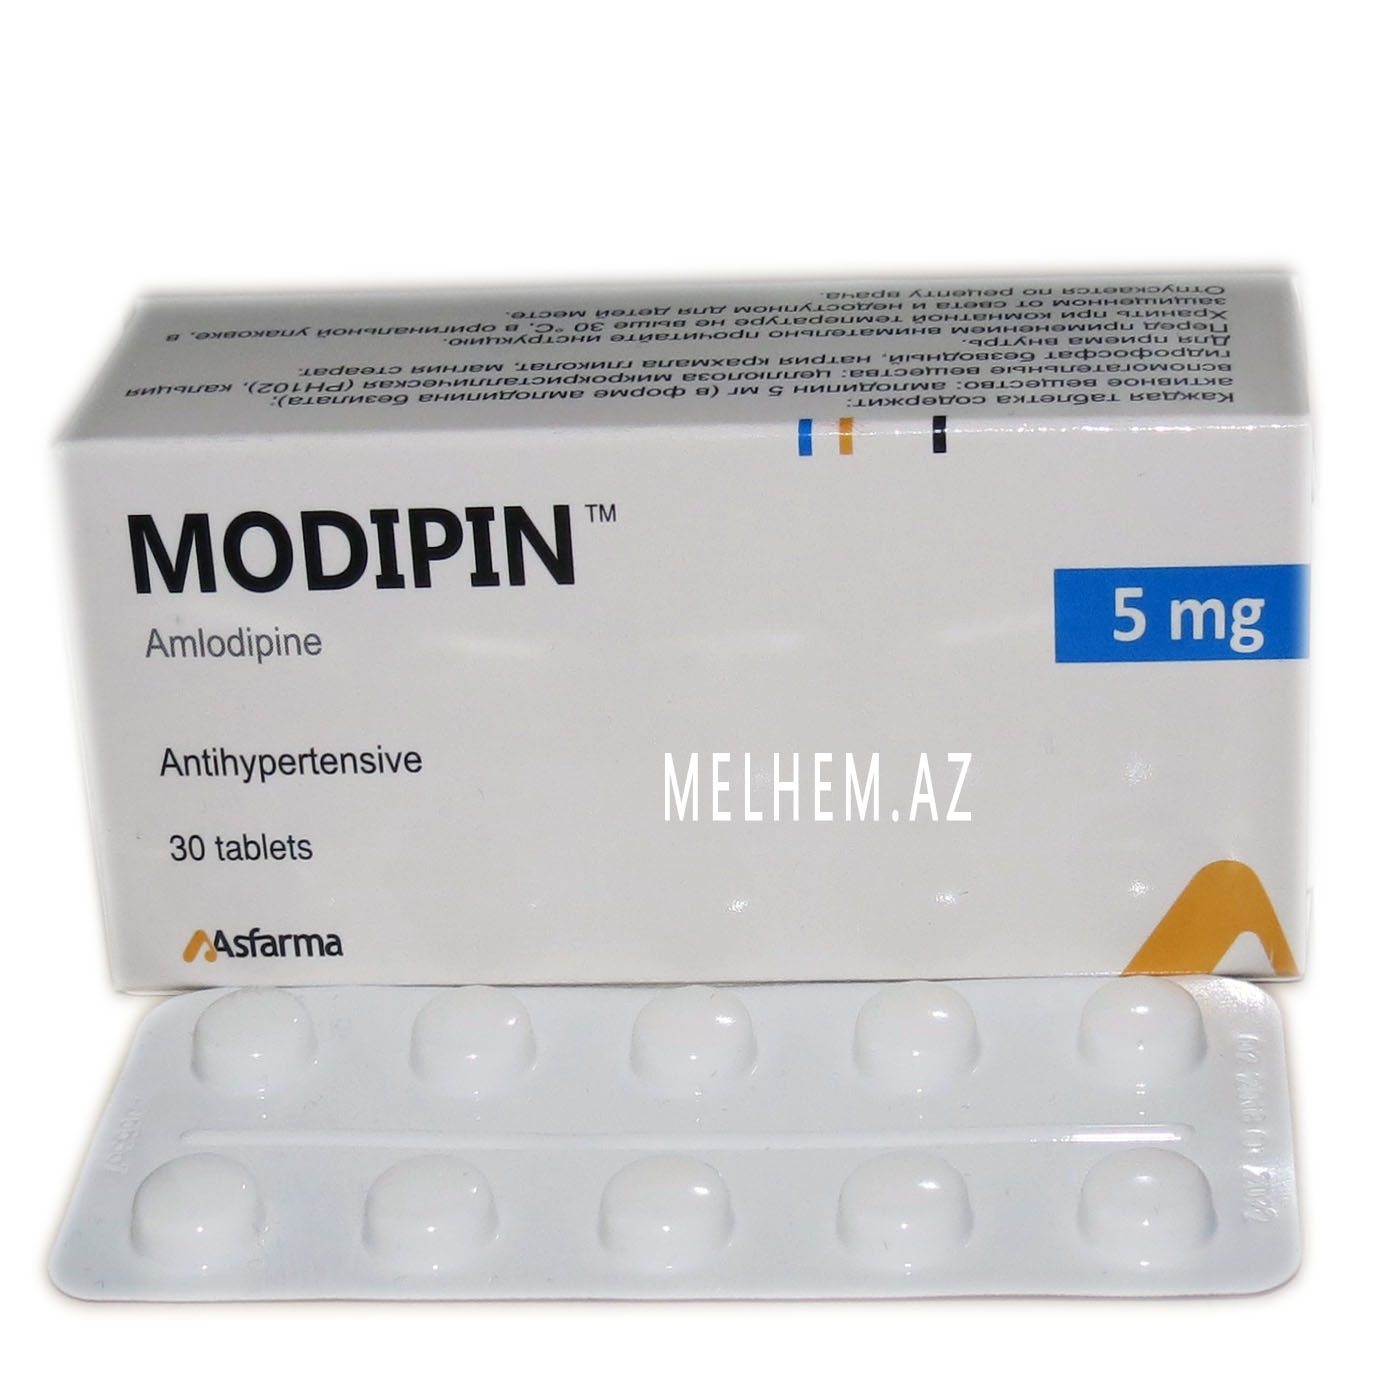 MODİPİN 5 MG